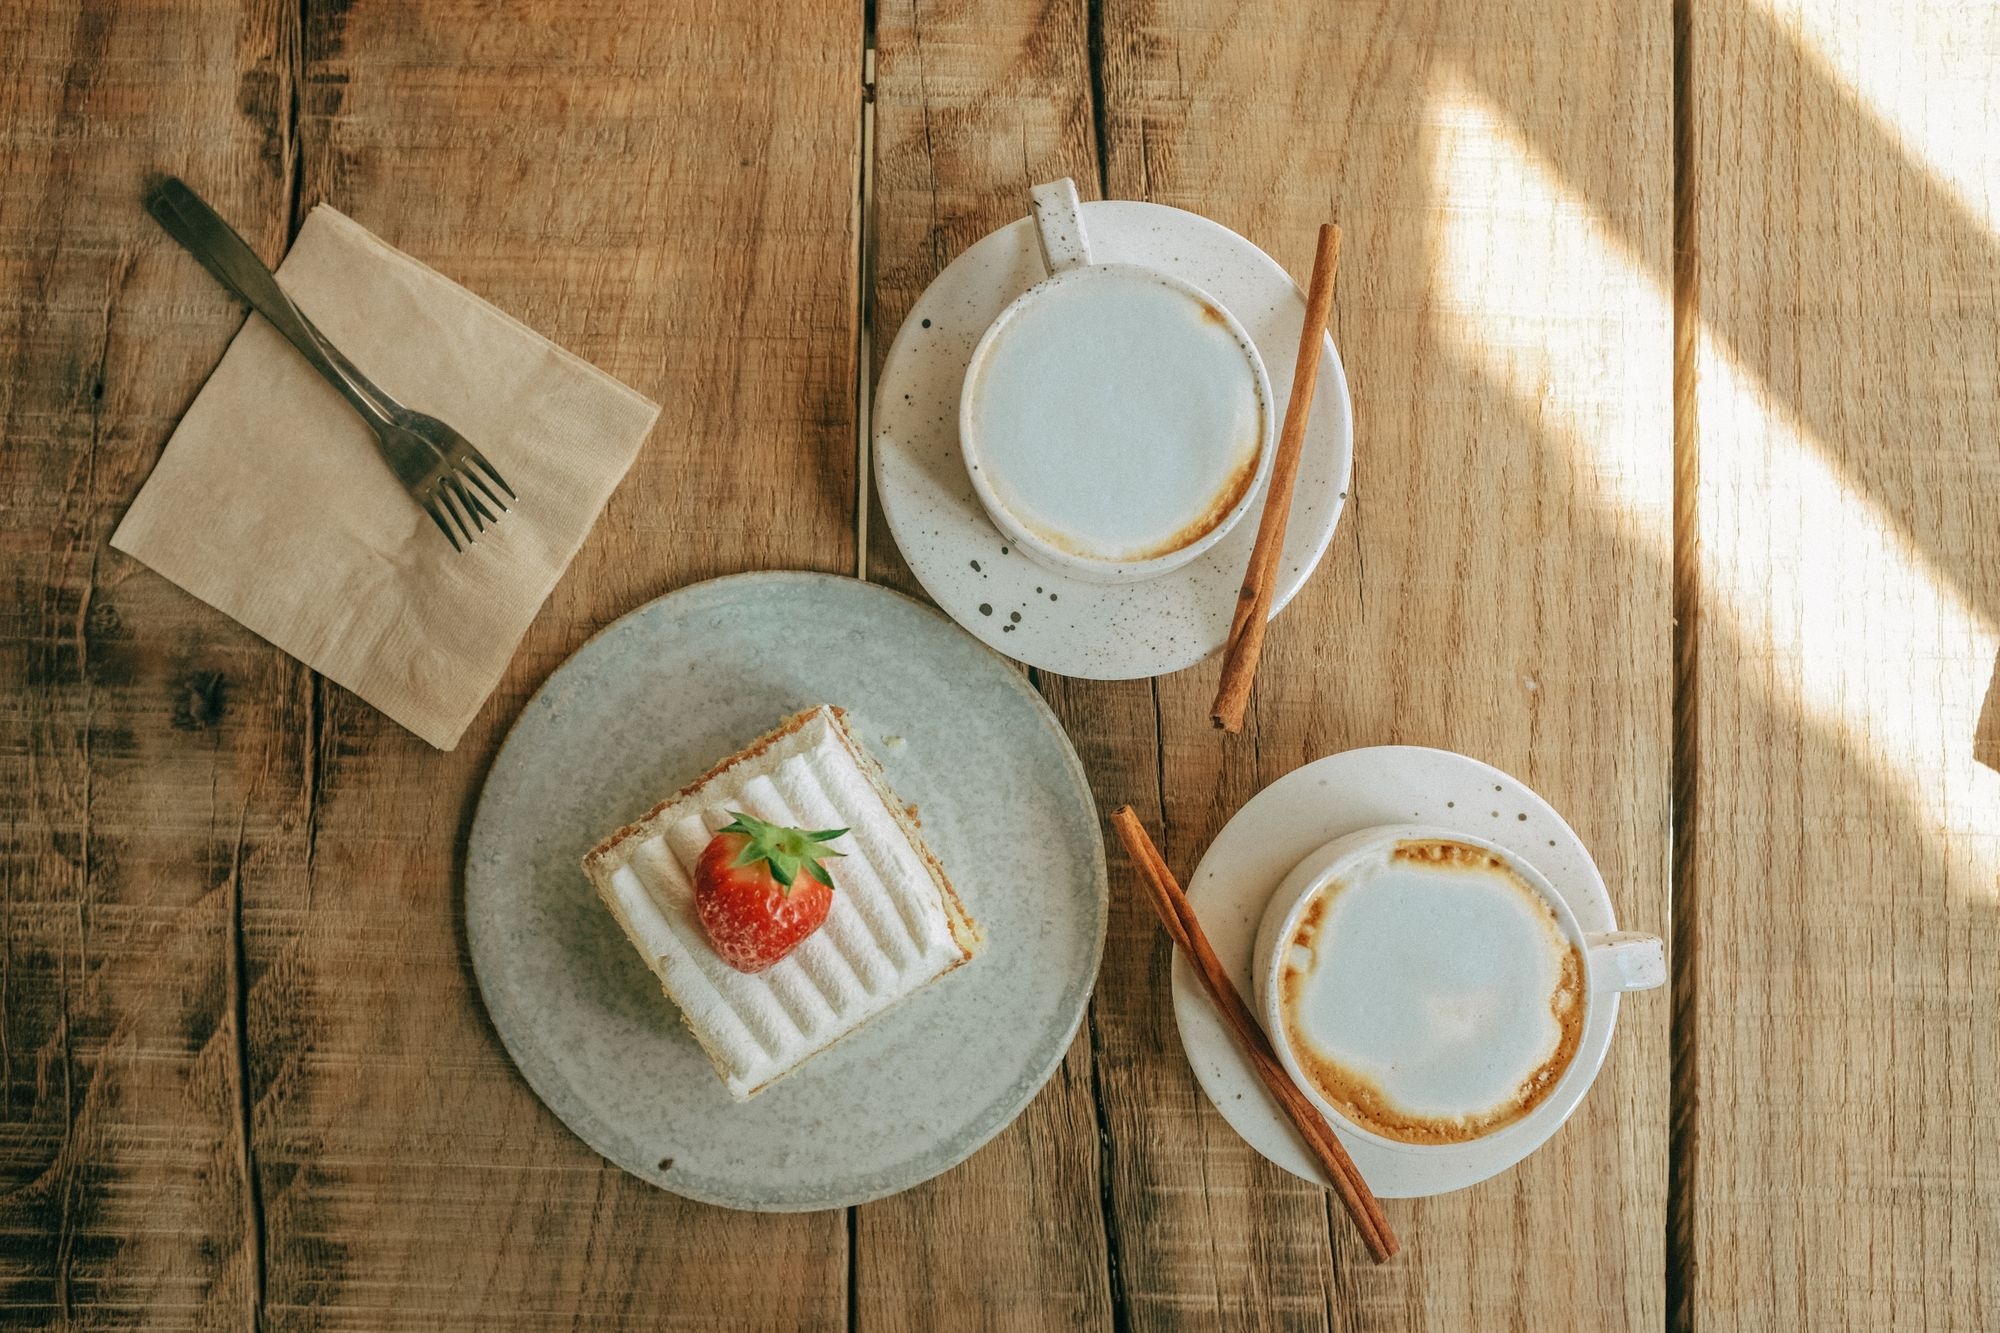 latte and cake in cafe 2020